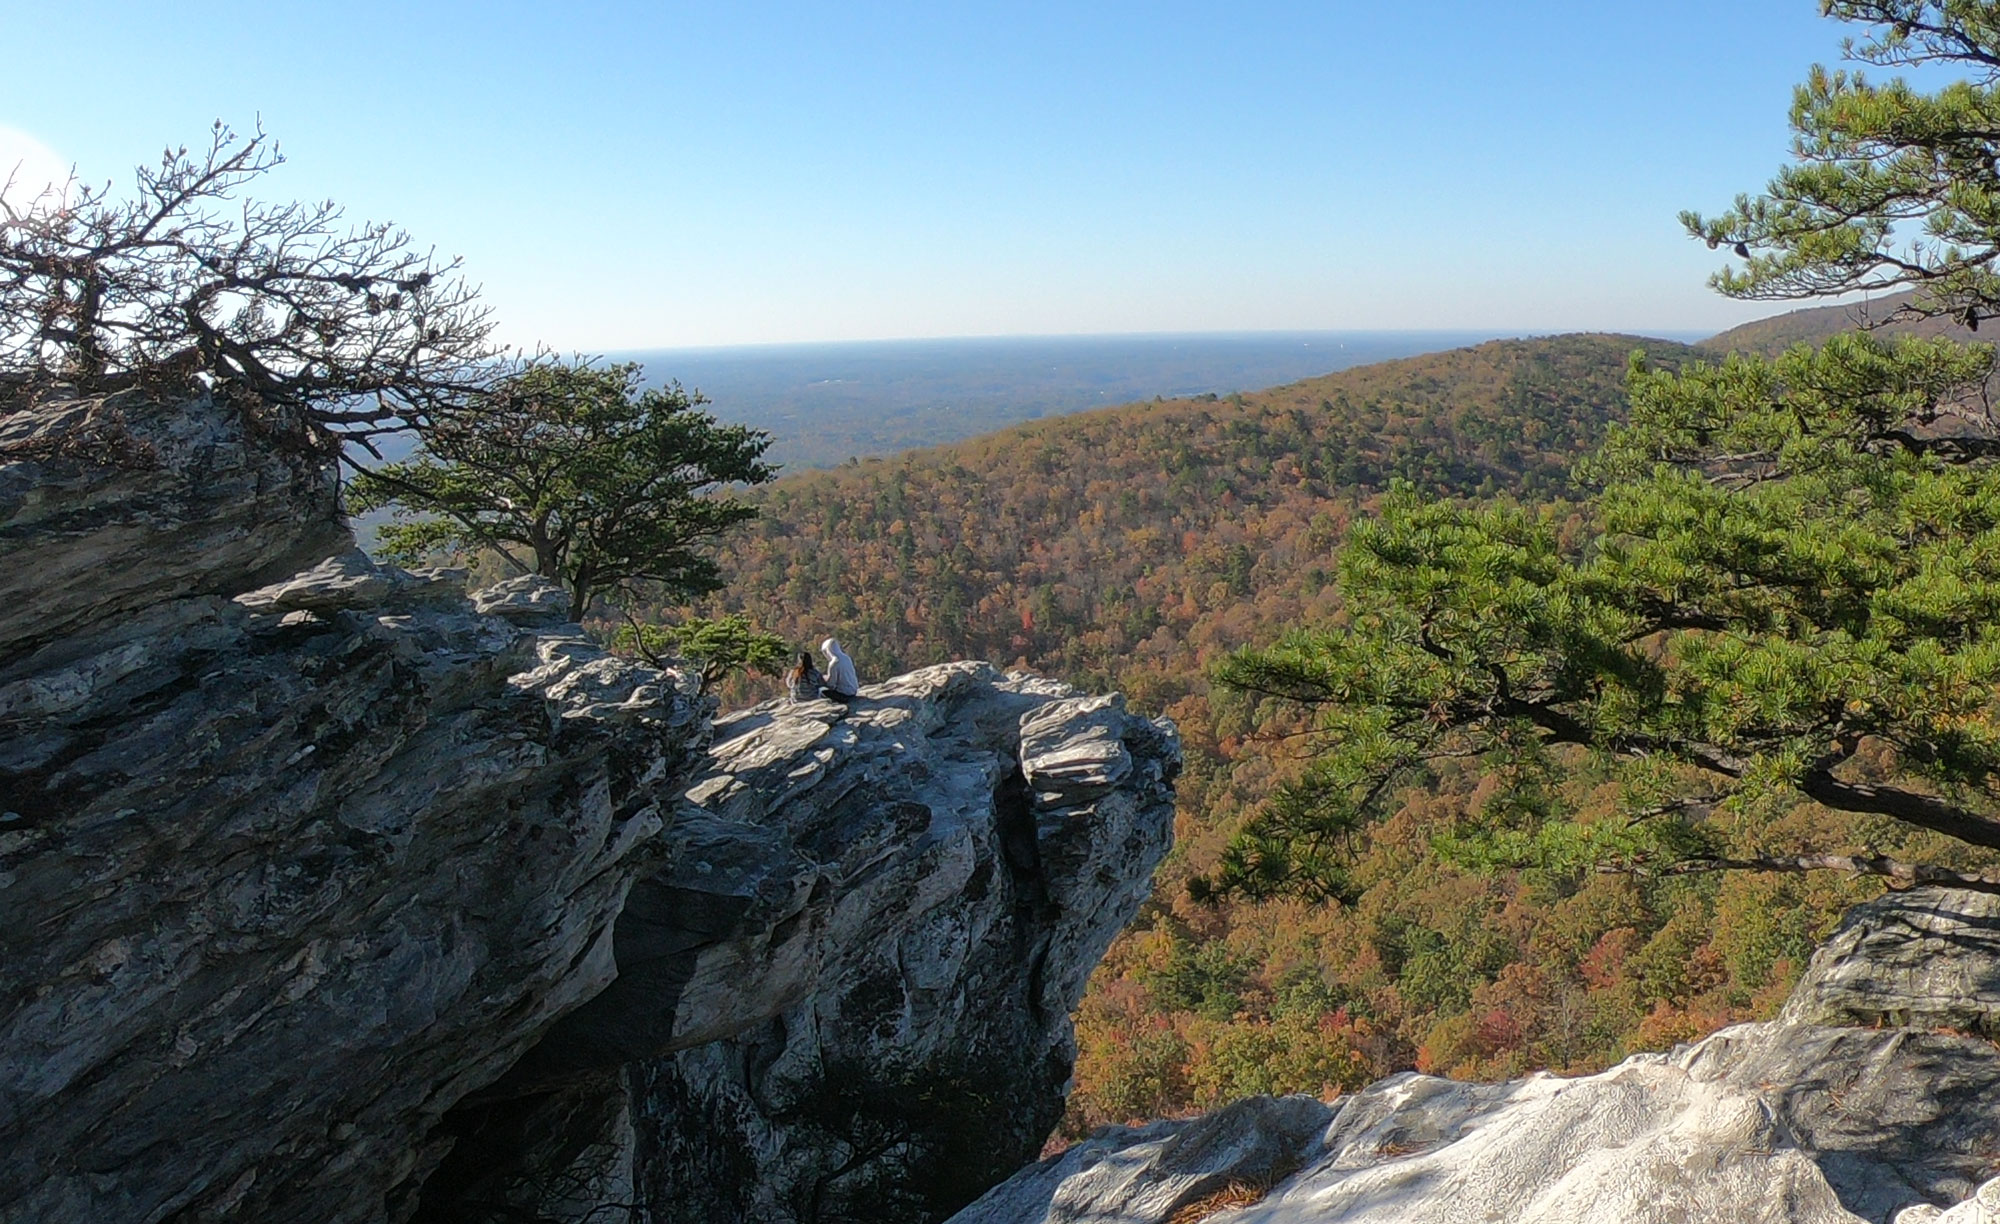 Two people hiked to Hanging Rock Overlook while camping in Hanging Rock State Park, North Carolina